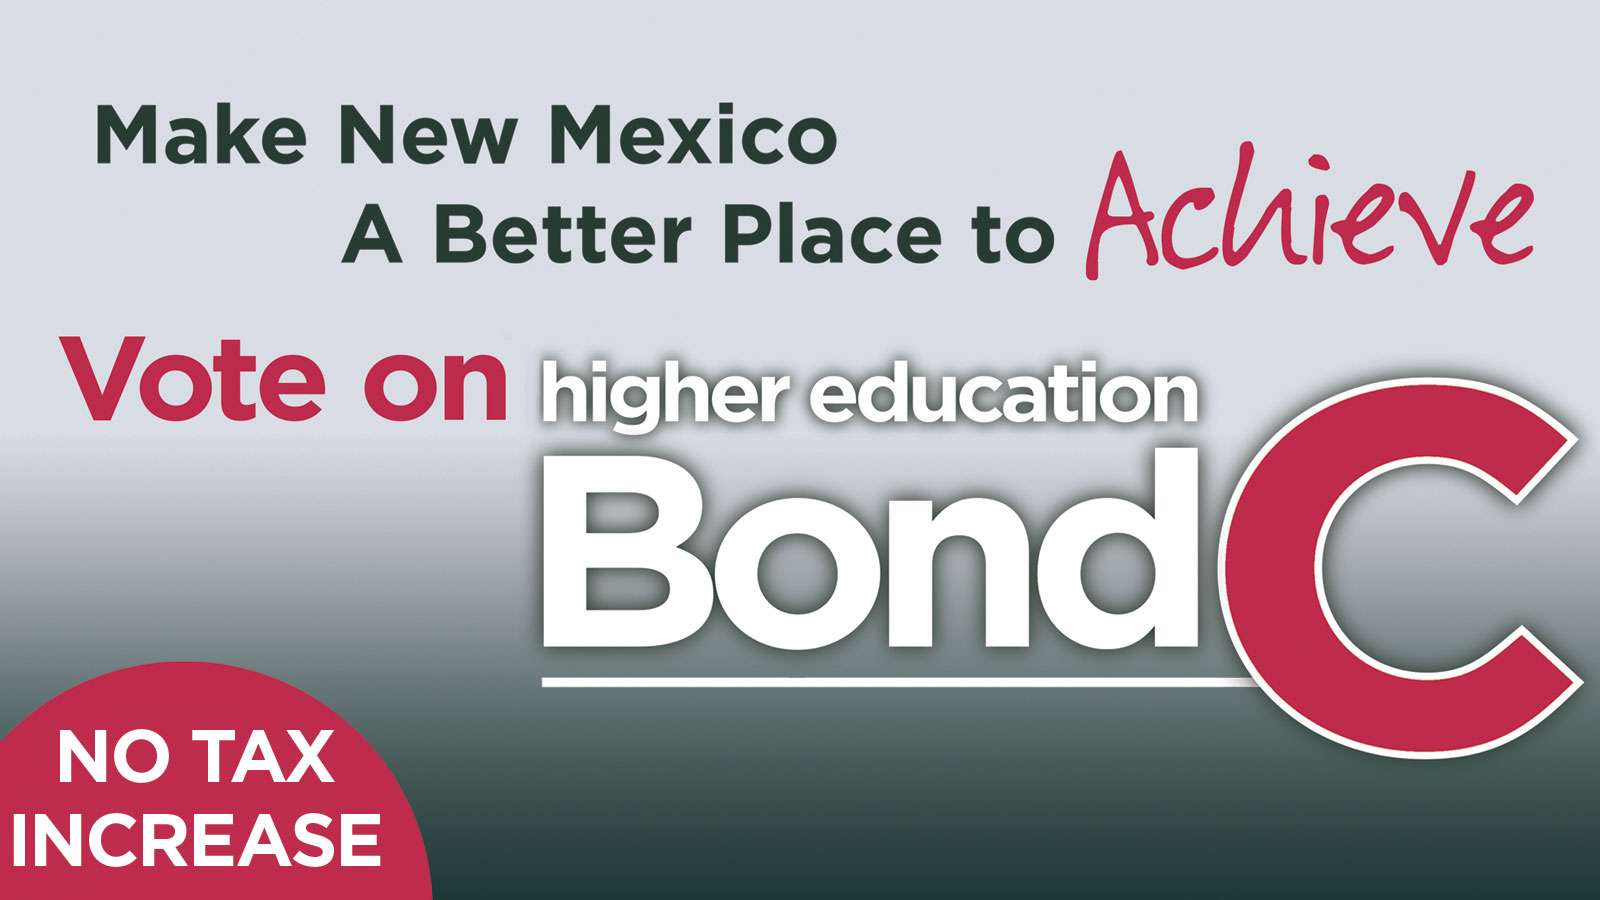 Bond C would impact higher education across New Mexico